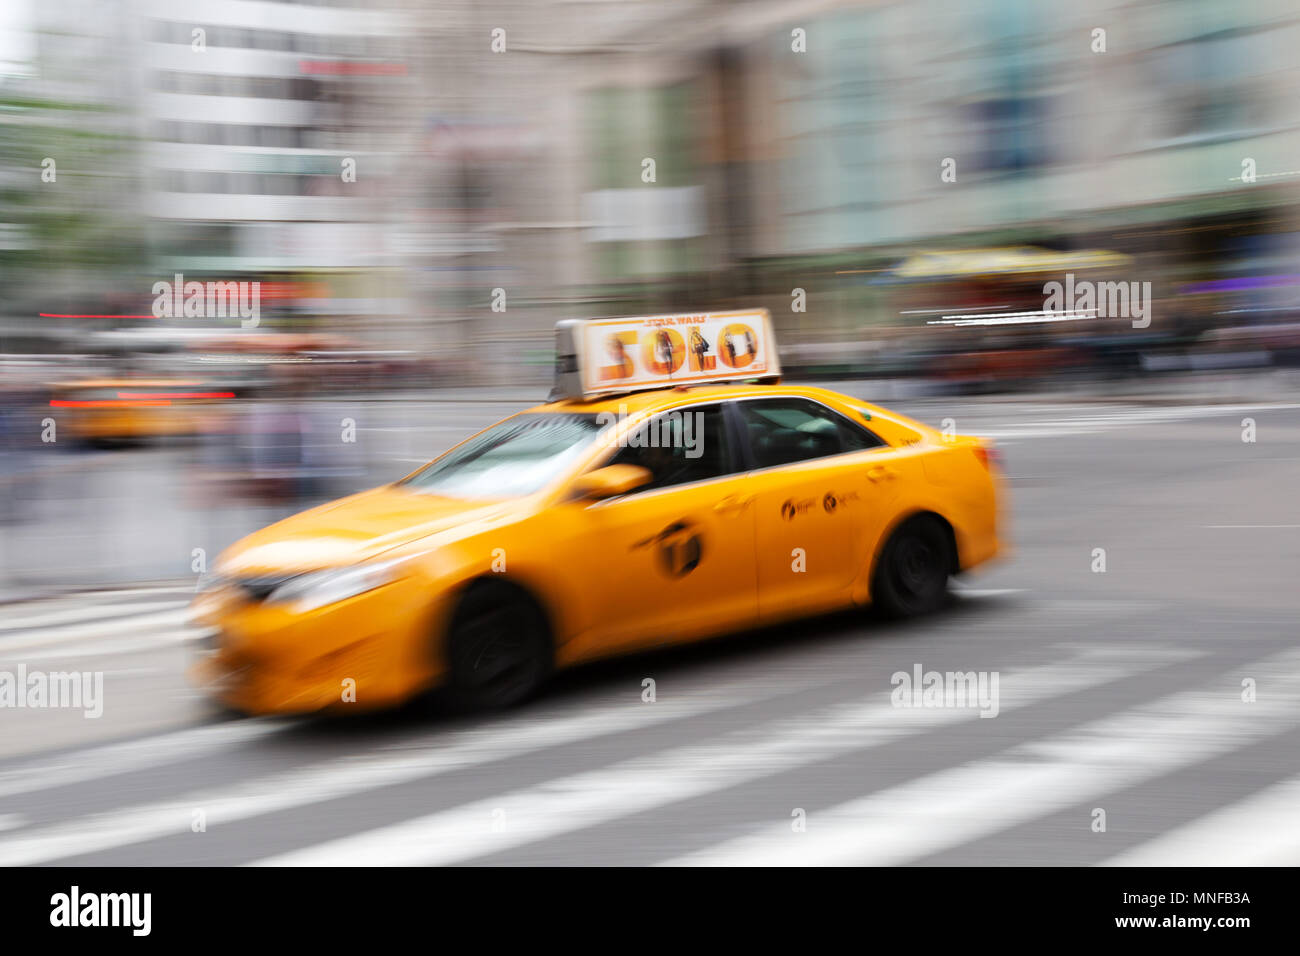 New York taxi, motion blur, Cinquième Avenue, New York City, USA Photo Stock